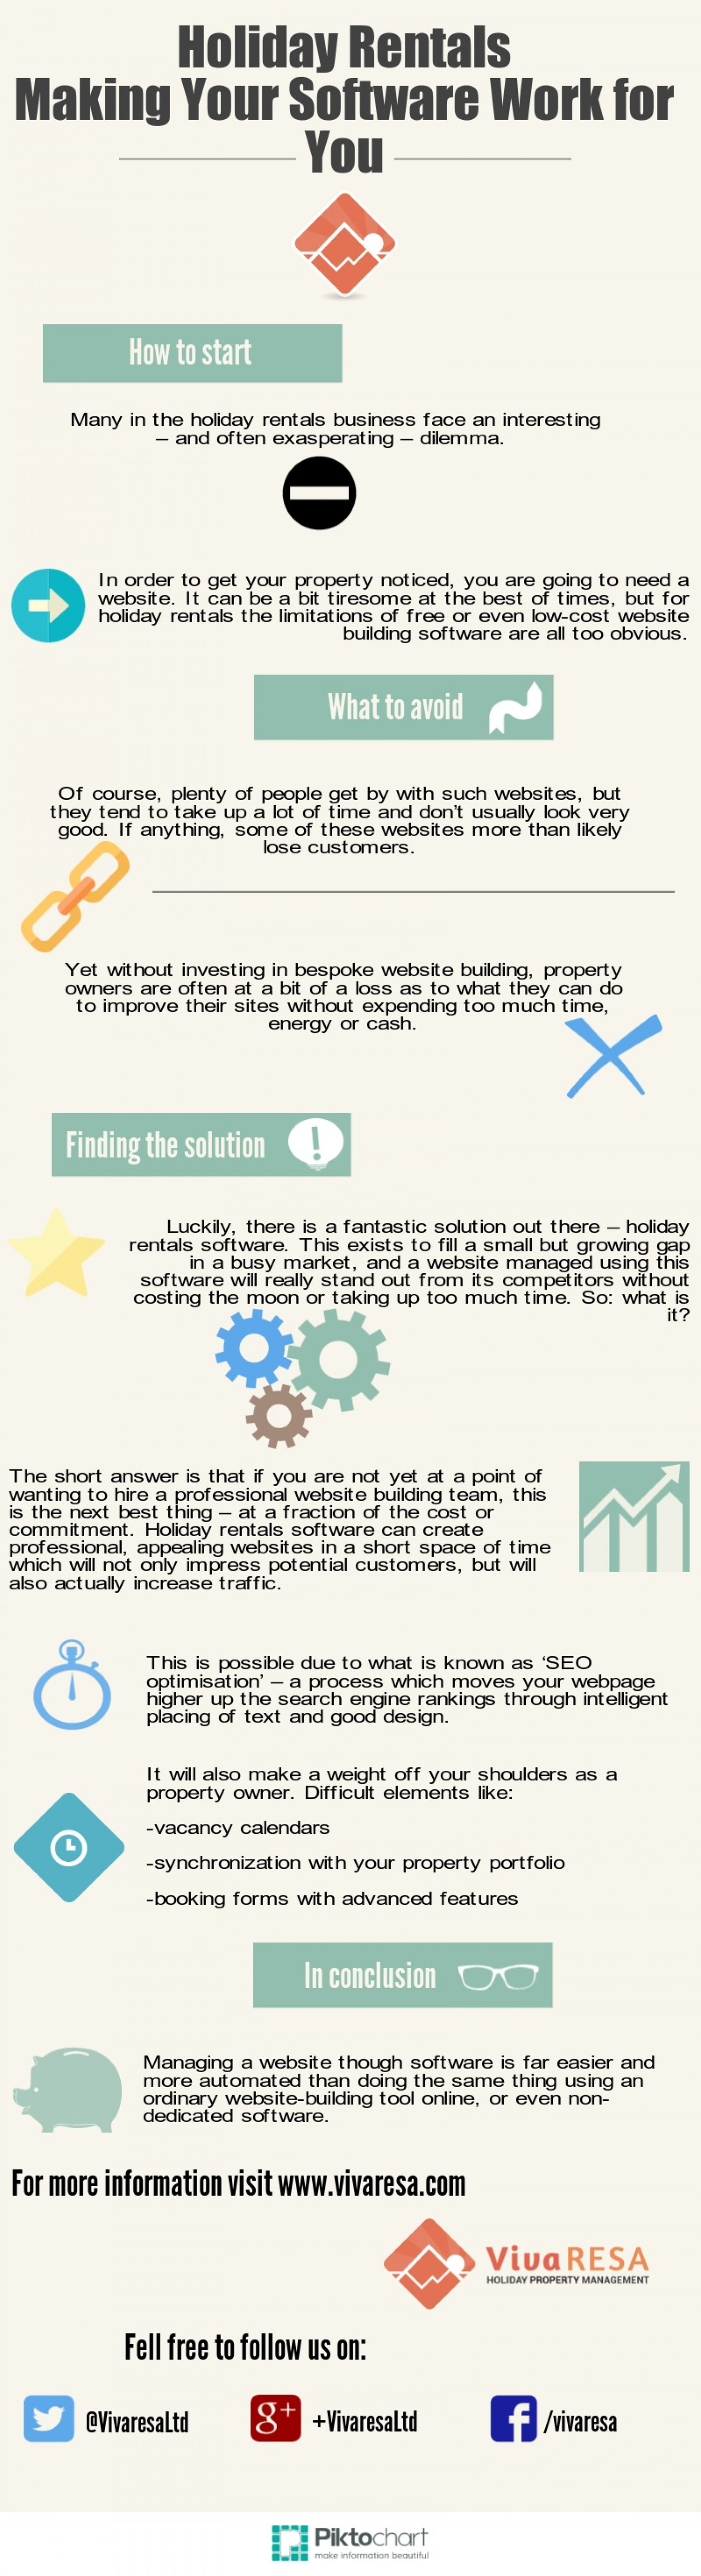 Holiday Rentals: Making Your Software Work for You Infographic